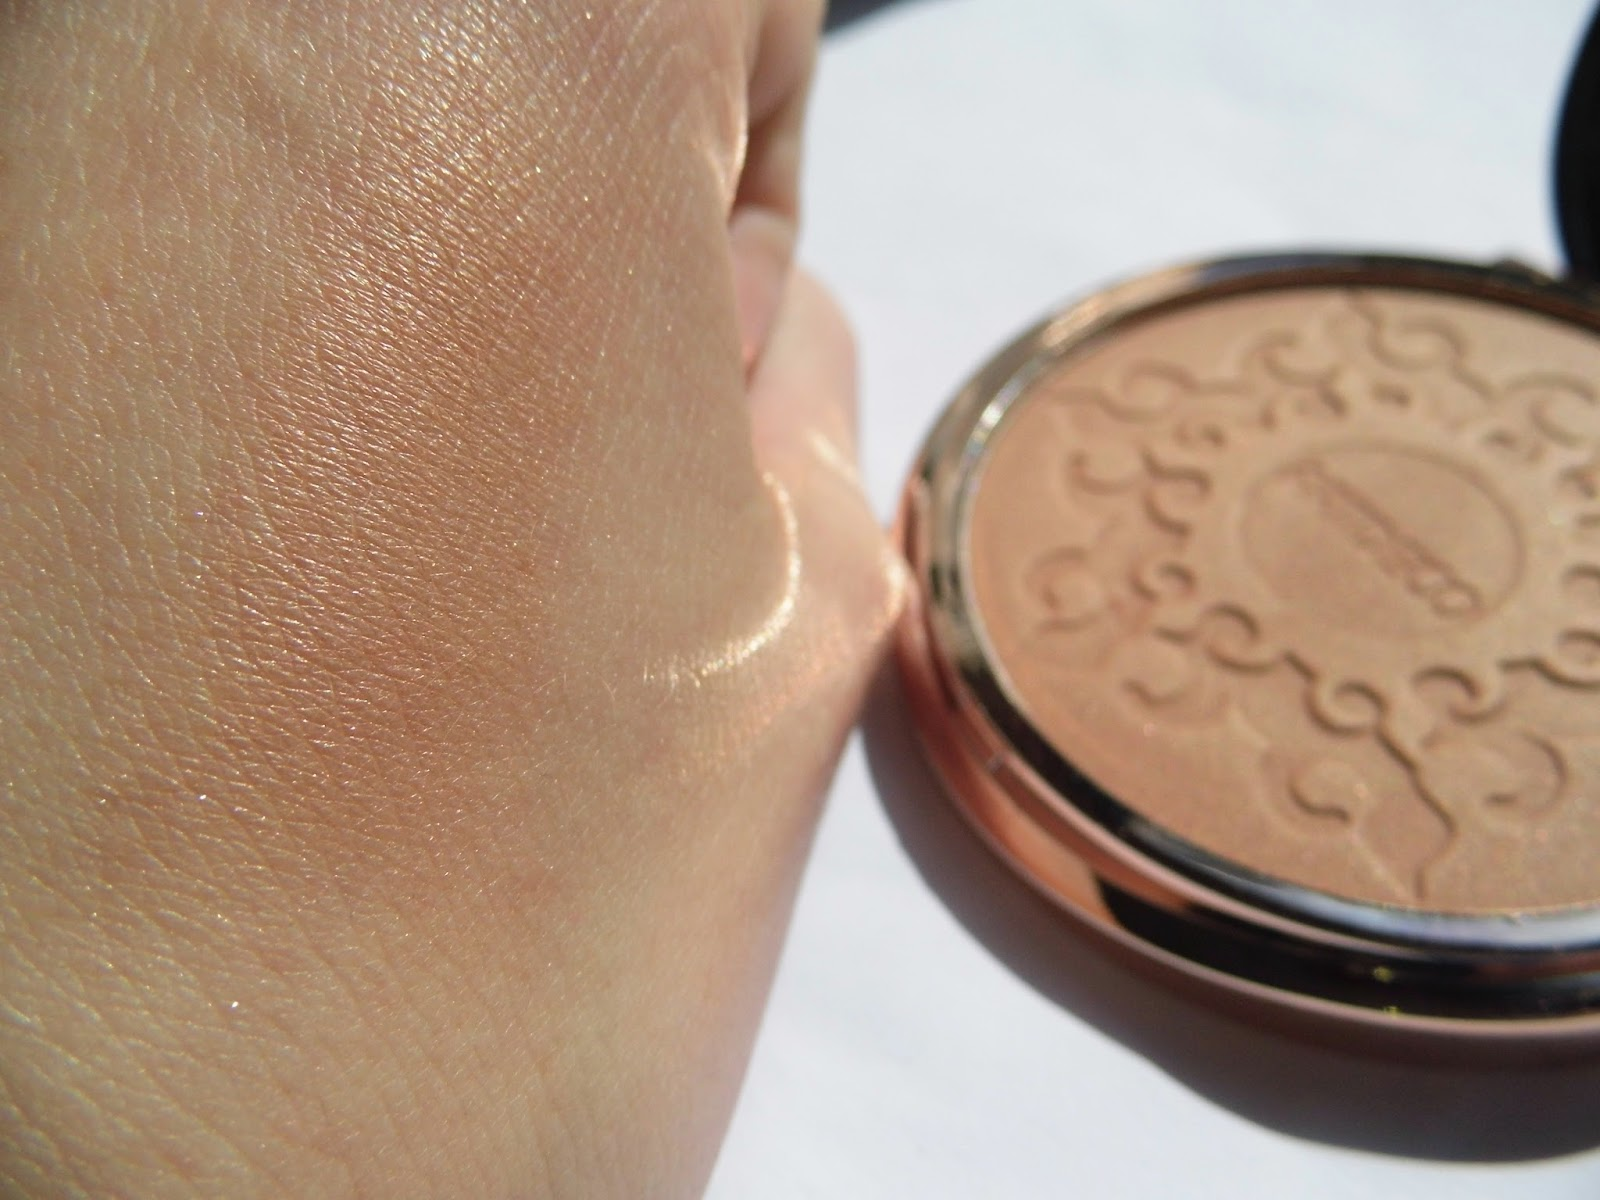 artdeco-bronzing-compact-powder-swatch-here-comes-the-sun-summer-2015-collection-picture